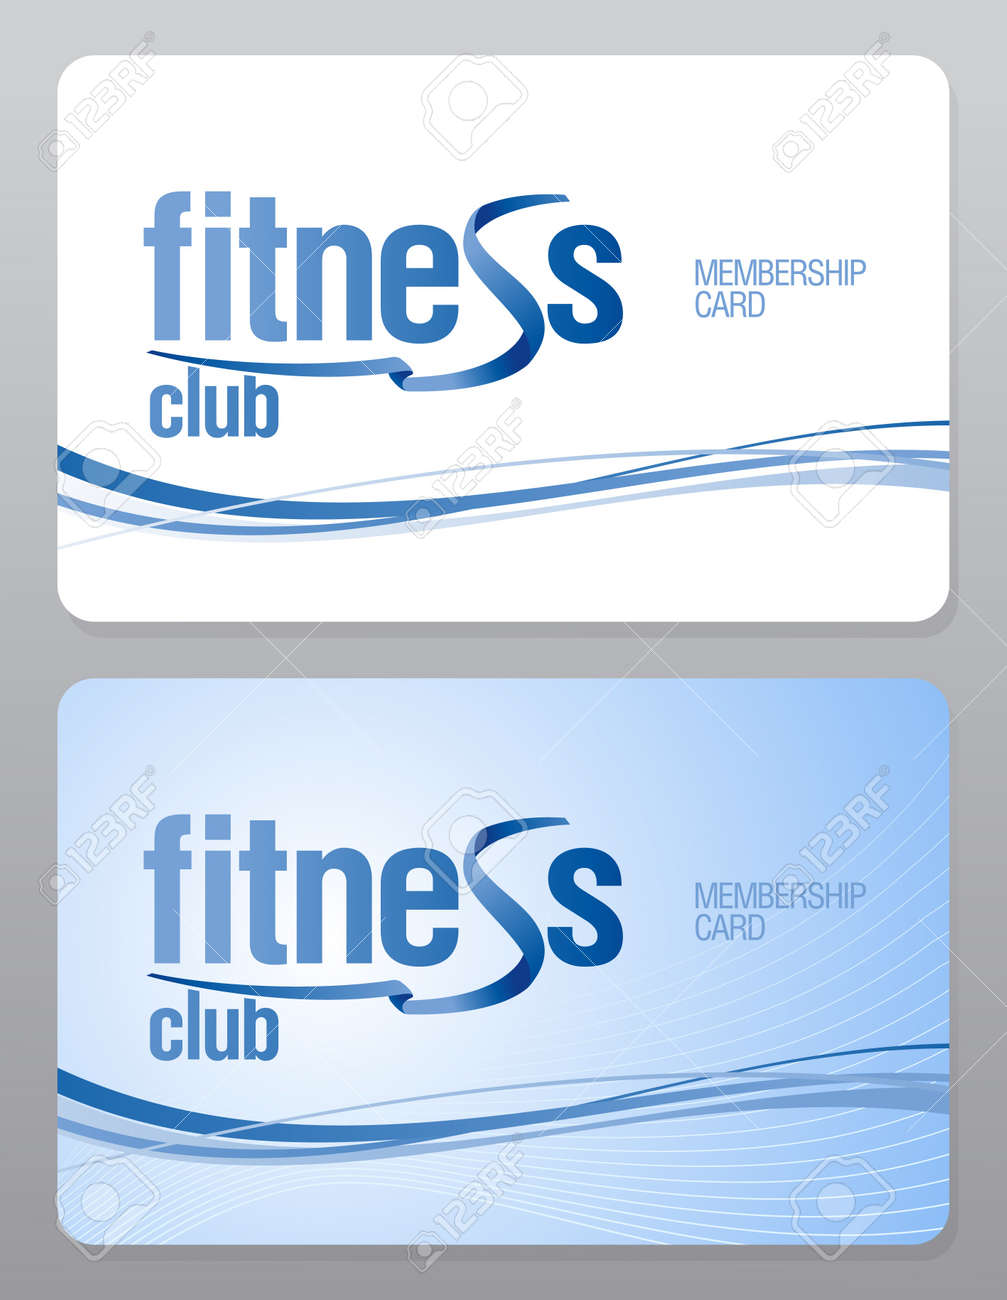 Club Membership Template Rent Receipt Download 12486403 Fitness Club Membership  Card Design Template Club Membership Templatehtml  Membership Cards Templates